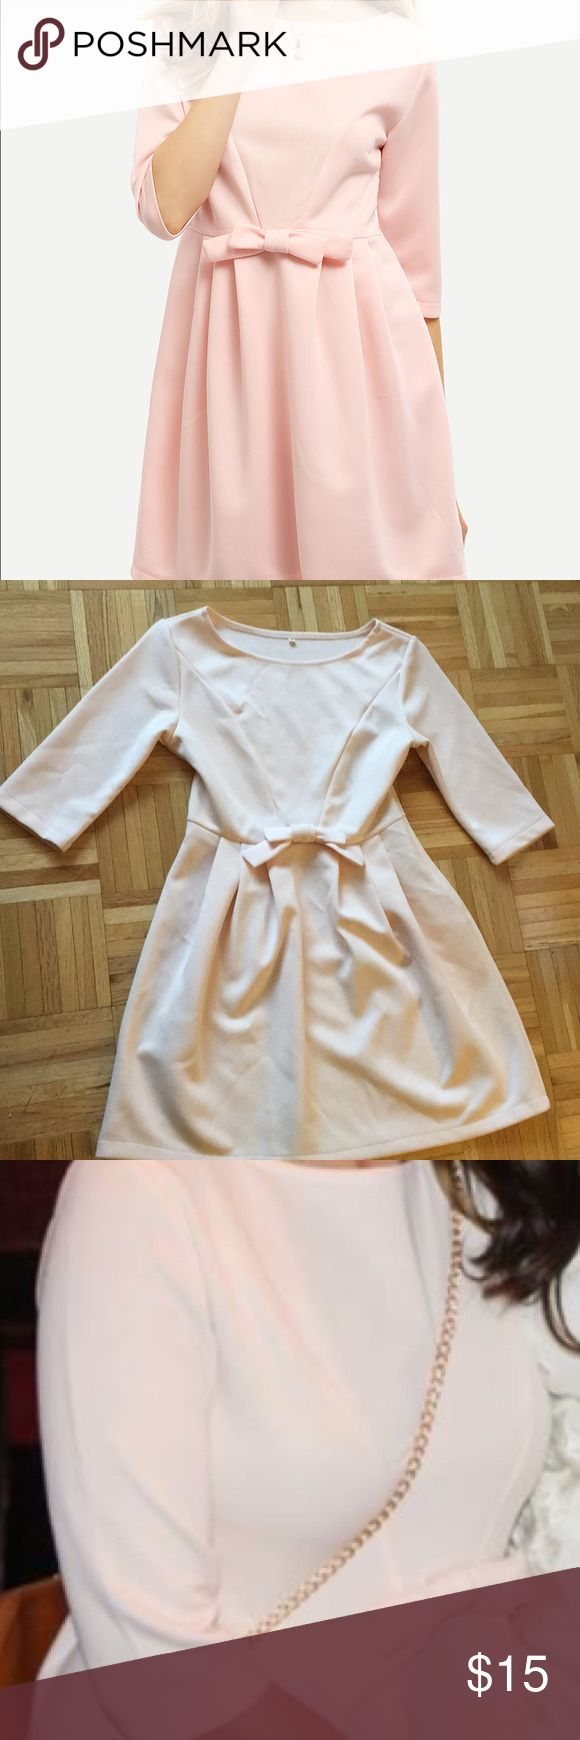 Pretty In Pink Half Sleeve Dress This cute round neck polyester dress is perfect for any occasion. The perfect bow in the front gives it a delicate feminine touch. Dresses Long Sleeve